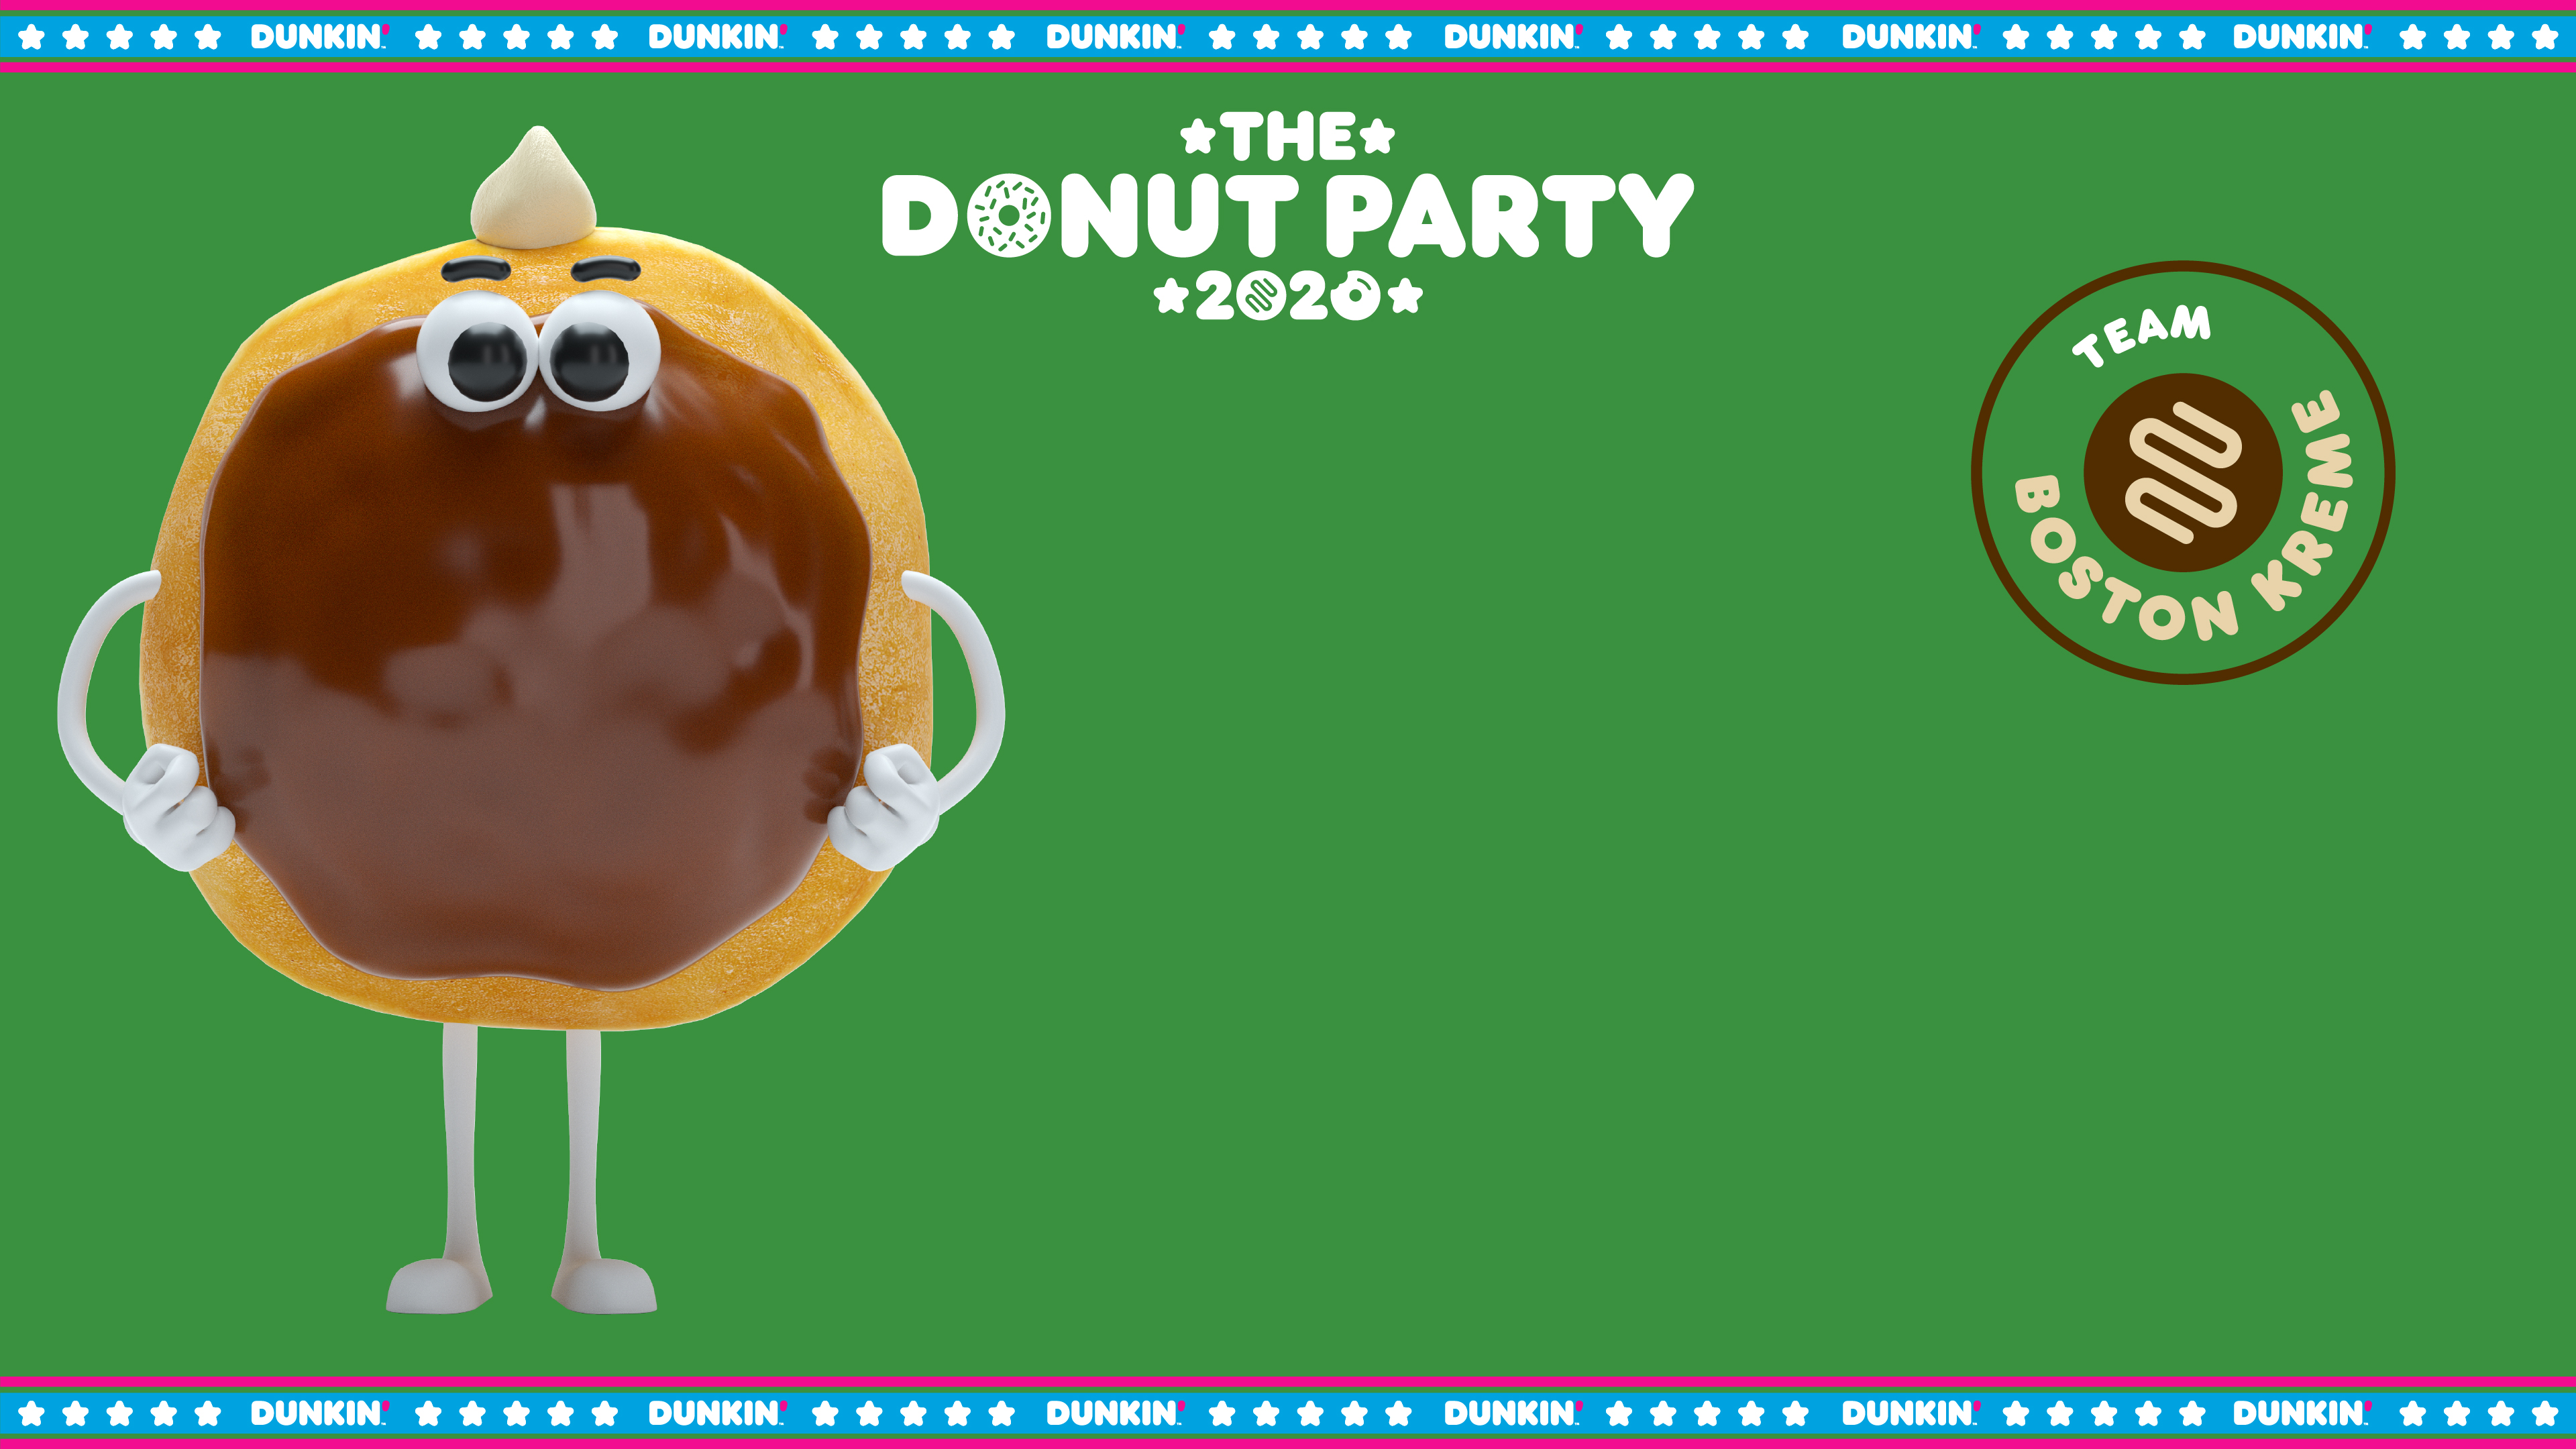 Dunkin' National Donut Day Zoom Background